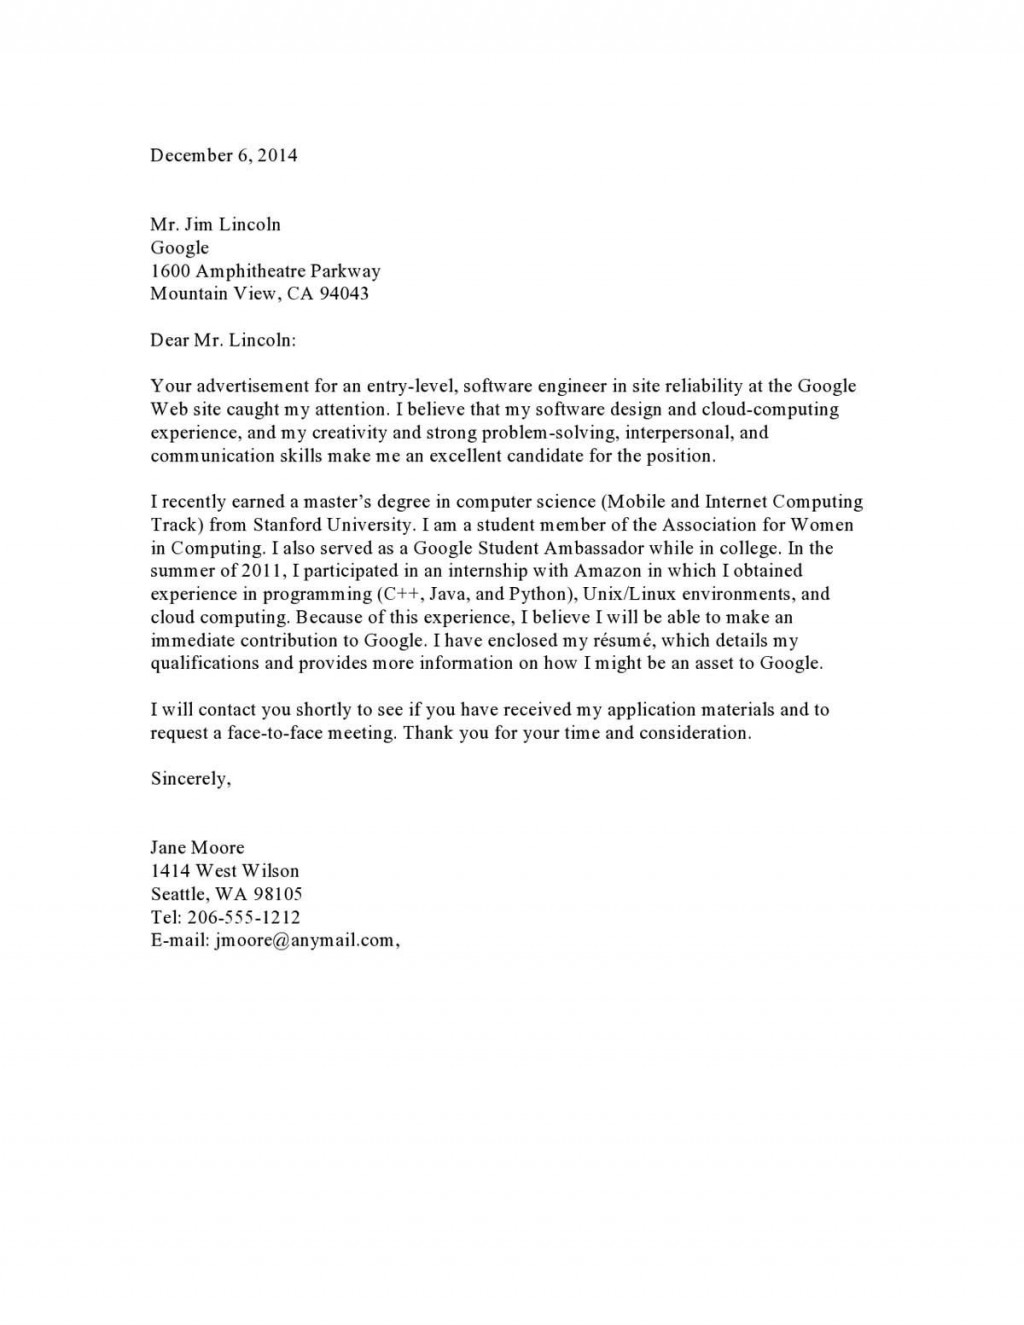 004 Rare Cover Letter Writing Sample Design  Example For Content Job ResumeLarge